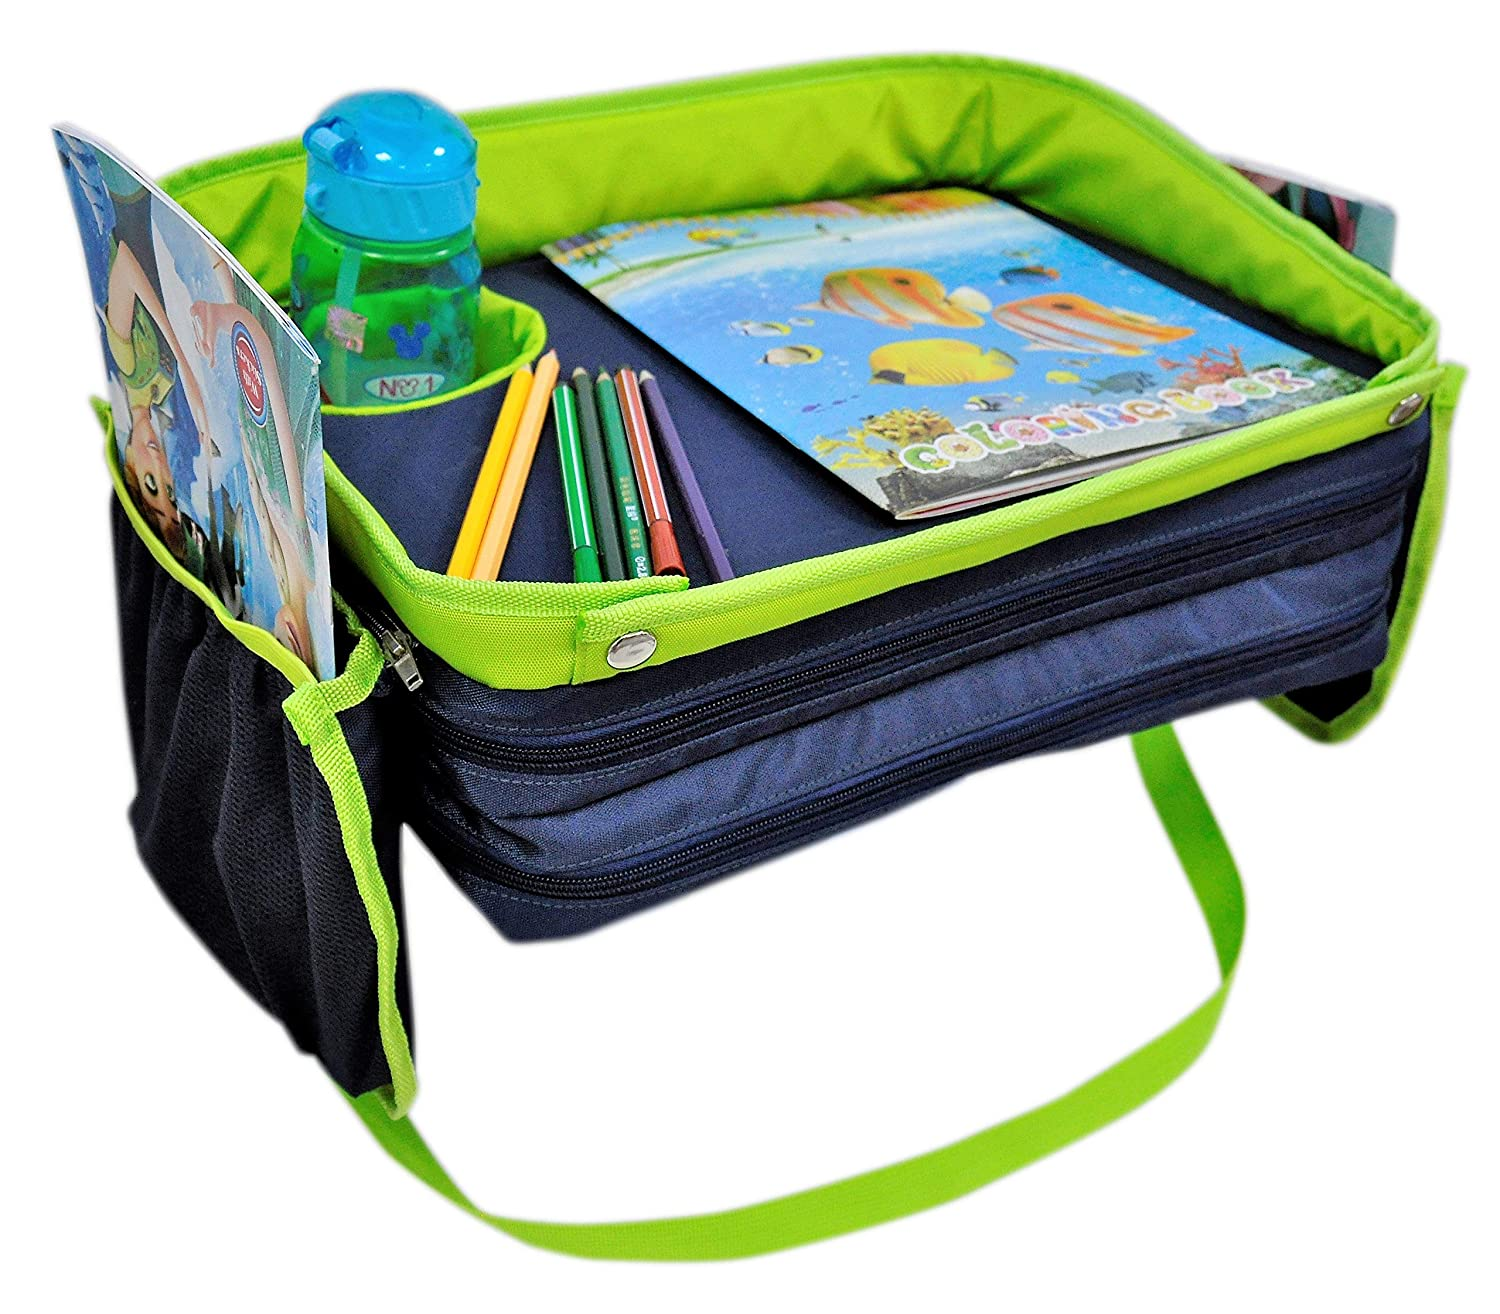 Kids旅行トレイfor Car Seat – Exclusive 4 x頑丈です壁N 2 X Deeperカップホルダー – Extra Wide Organizer Lap Tray for Baby旅行 – Eat N Play Station For旅行toddlers-forベビーカーブースターホーム   B071JVZT32